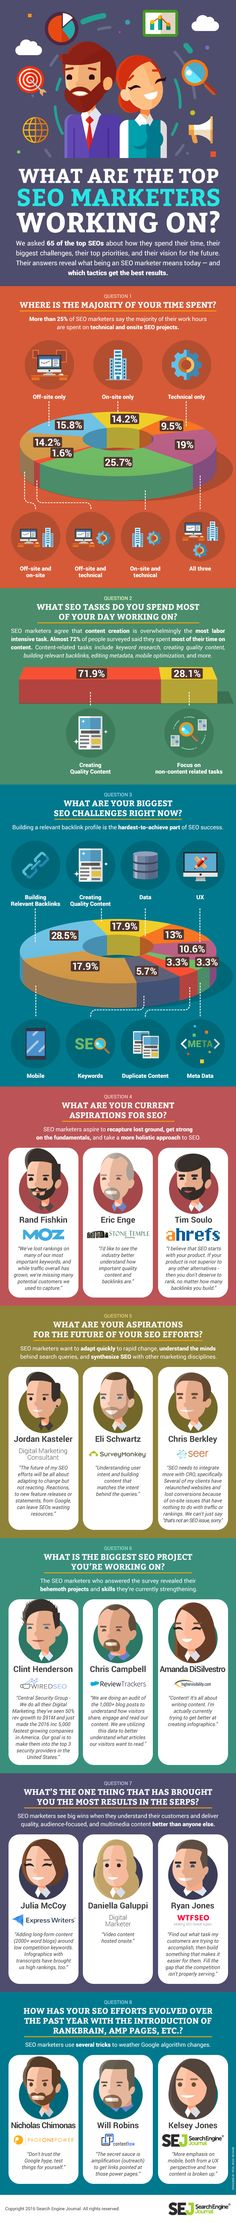 What Gets The Most Results for Top SEOs? [Infographic]